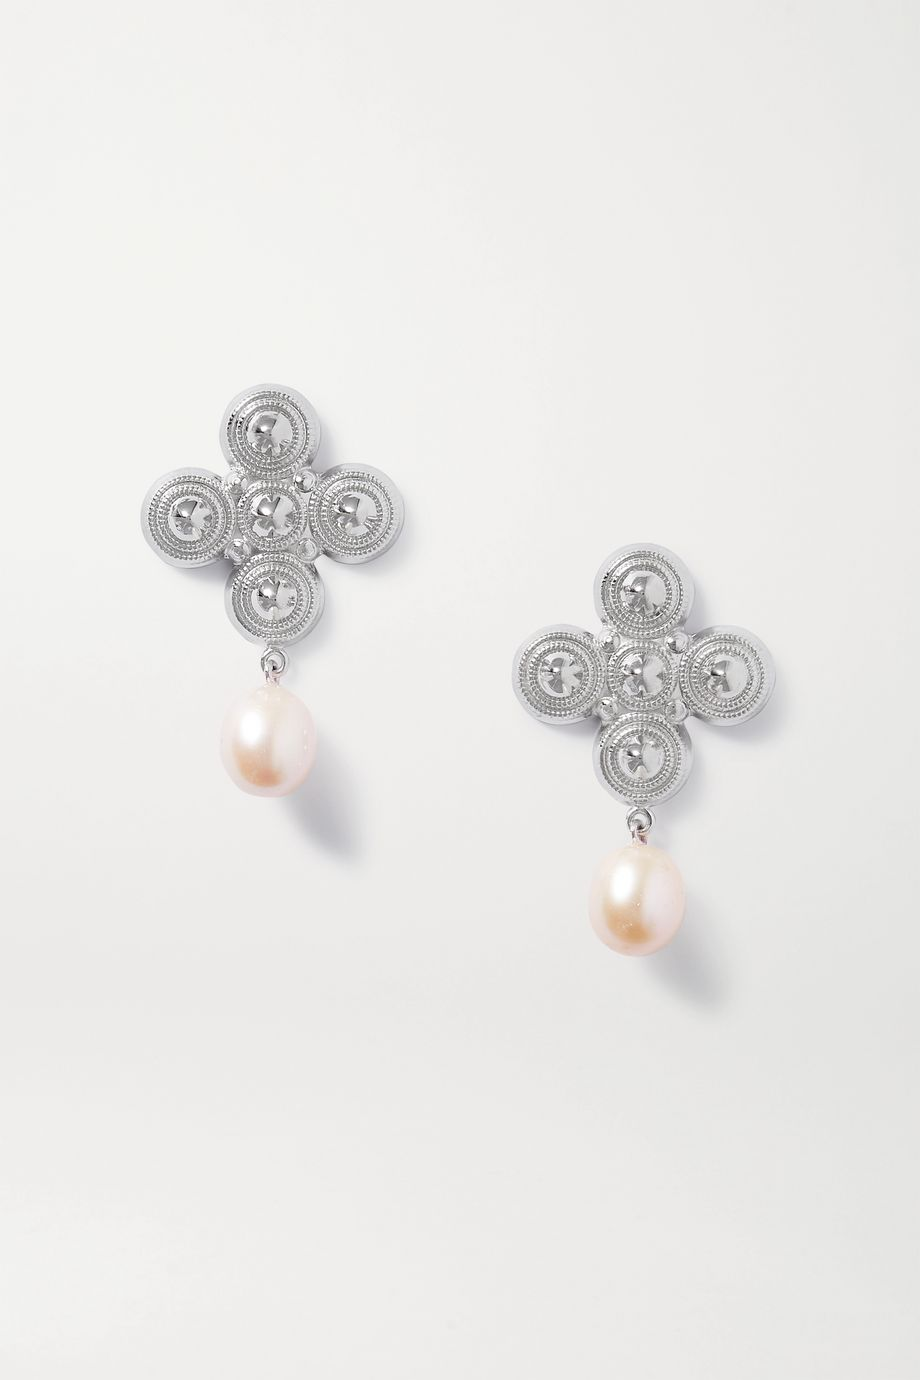 Soft Mountains Star rhodium-plated freshwater pearl earrings